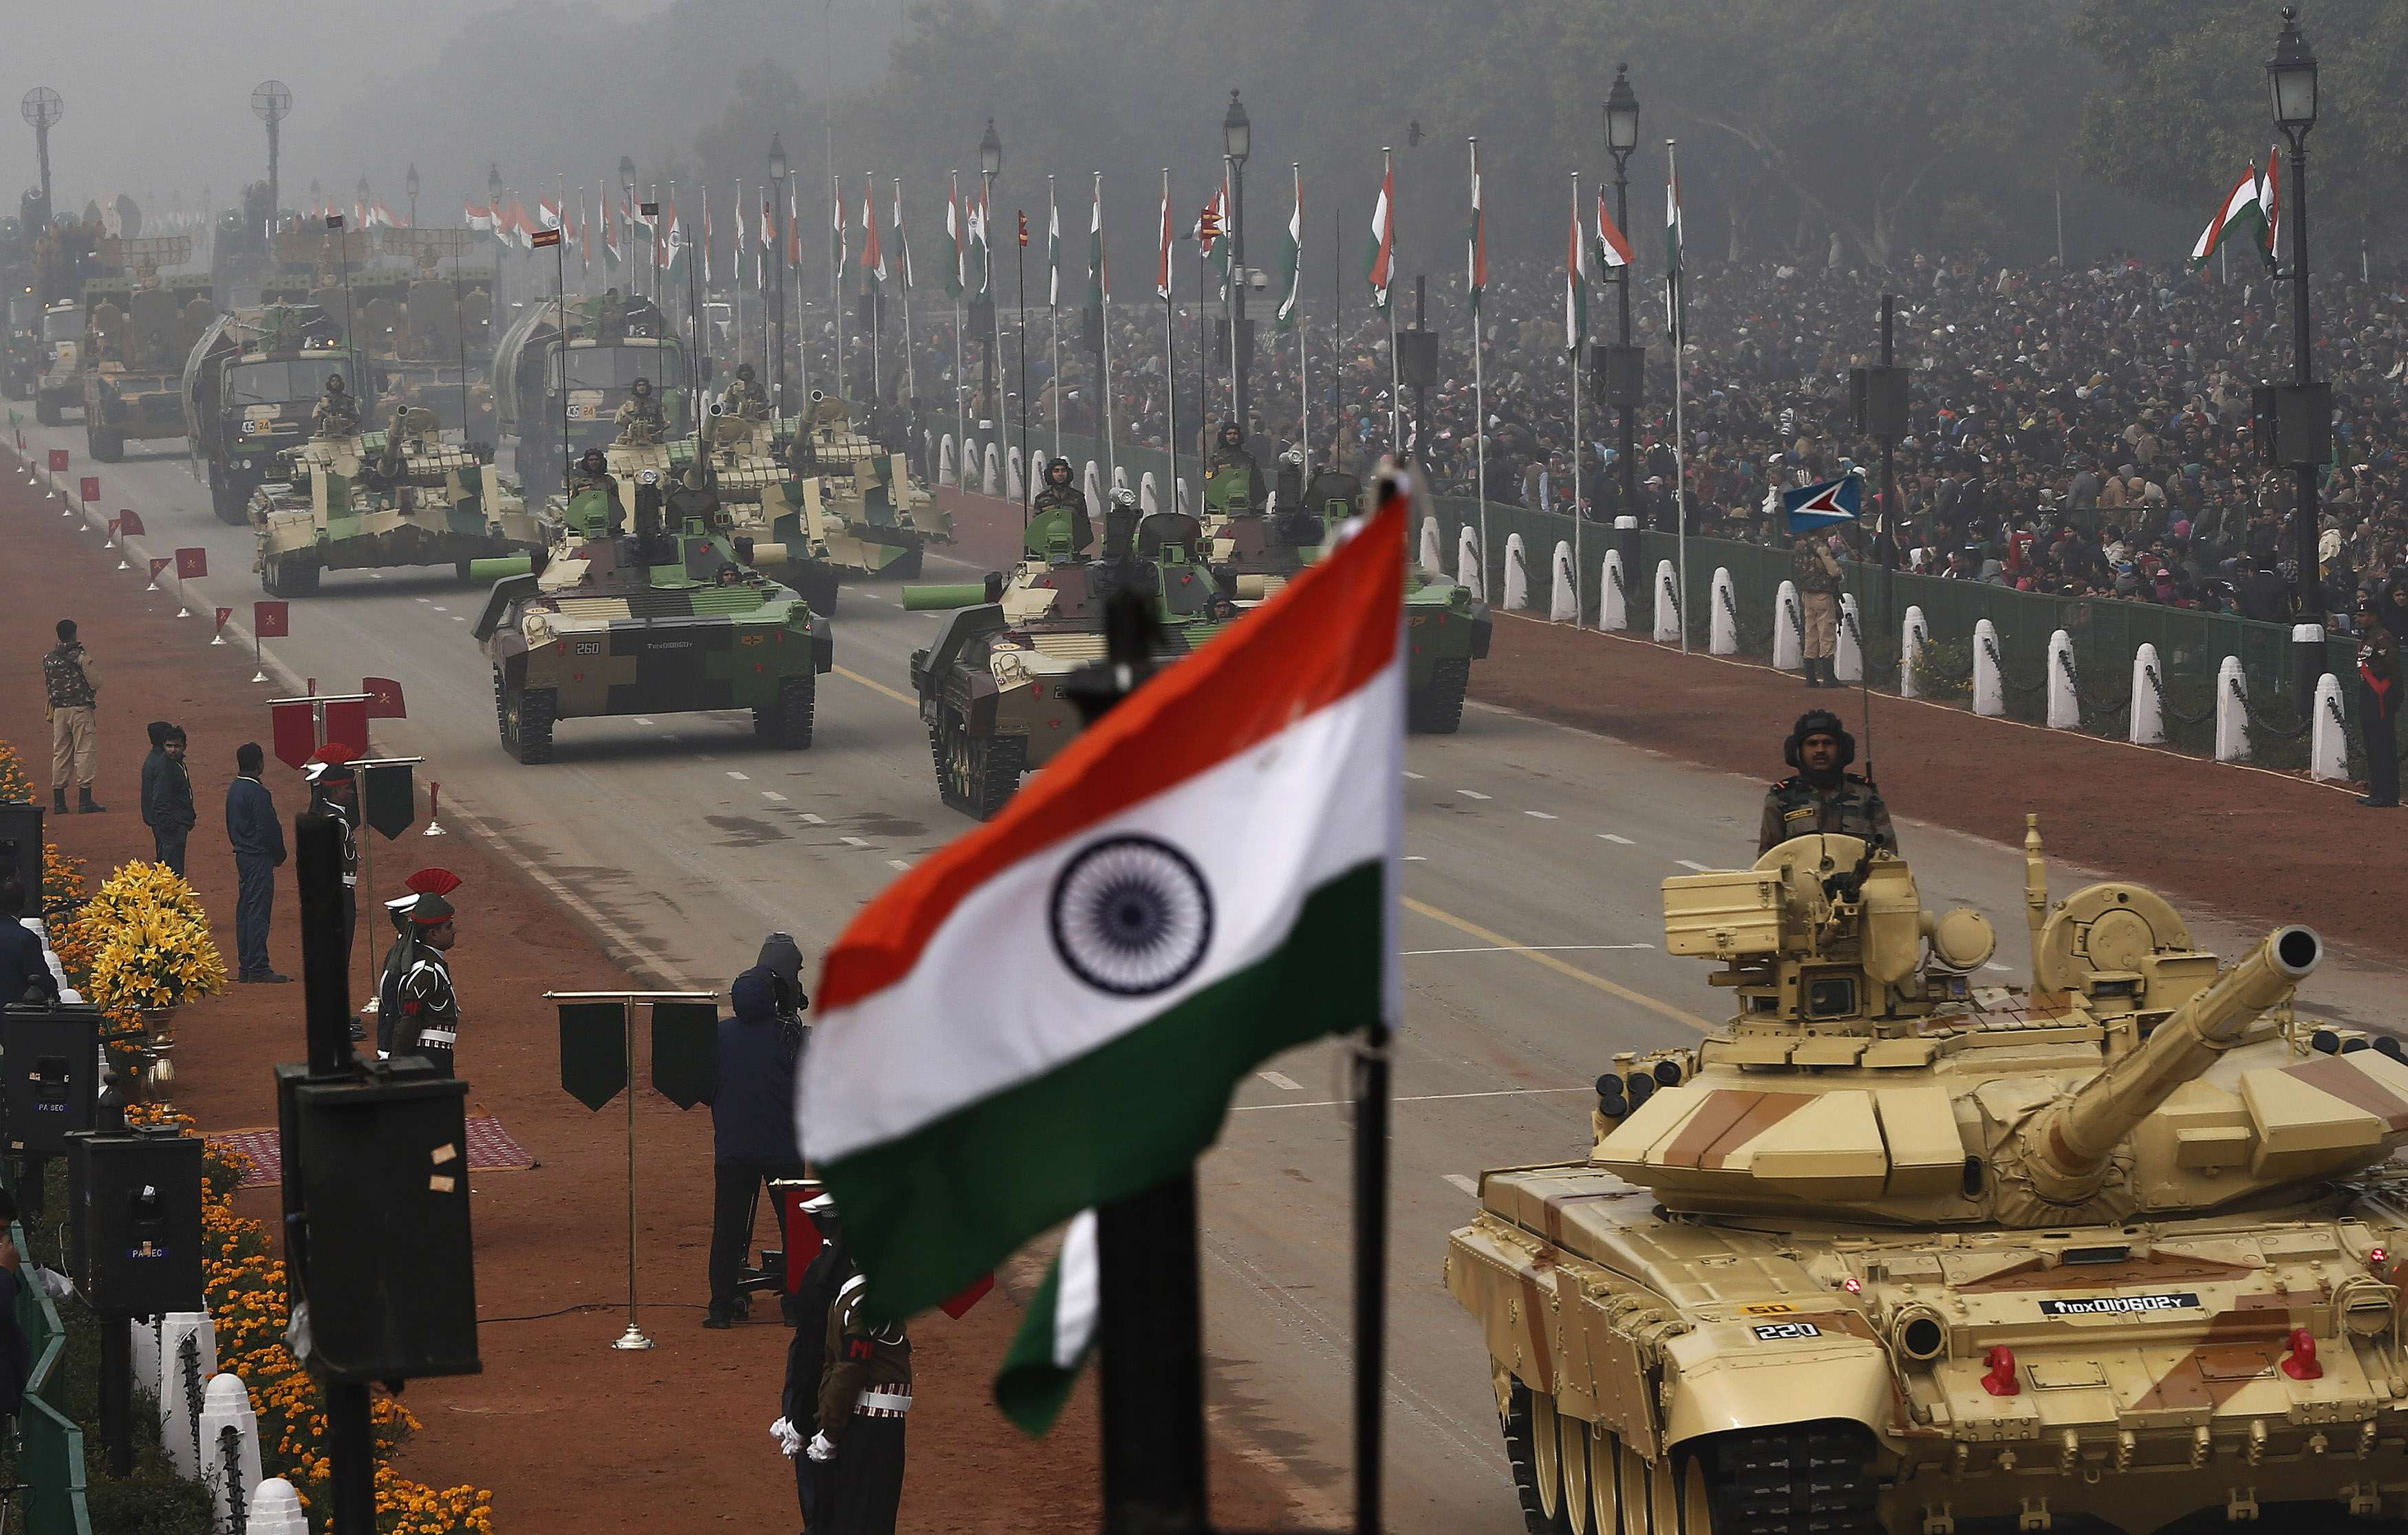 Indian Army's Arjun MK-I tanks (MBTs) are driven for display during the Republic Day parade in New Delhi January 26, 2014. India celebrated its 65th Republic Day on Sunday. REUTERS/Adnan Abidi (INDIA - Tags: MILITARY ANNIVERSARY POLITICS)